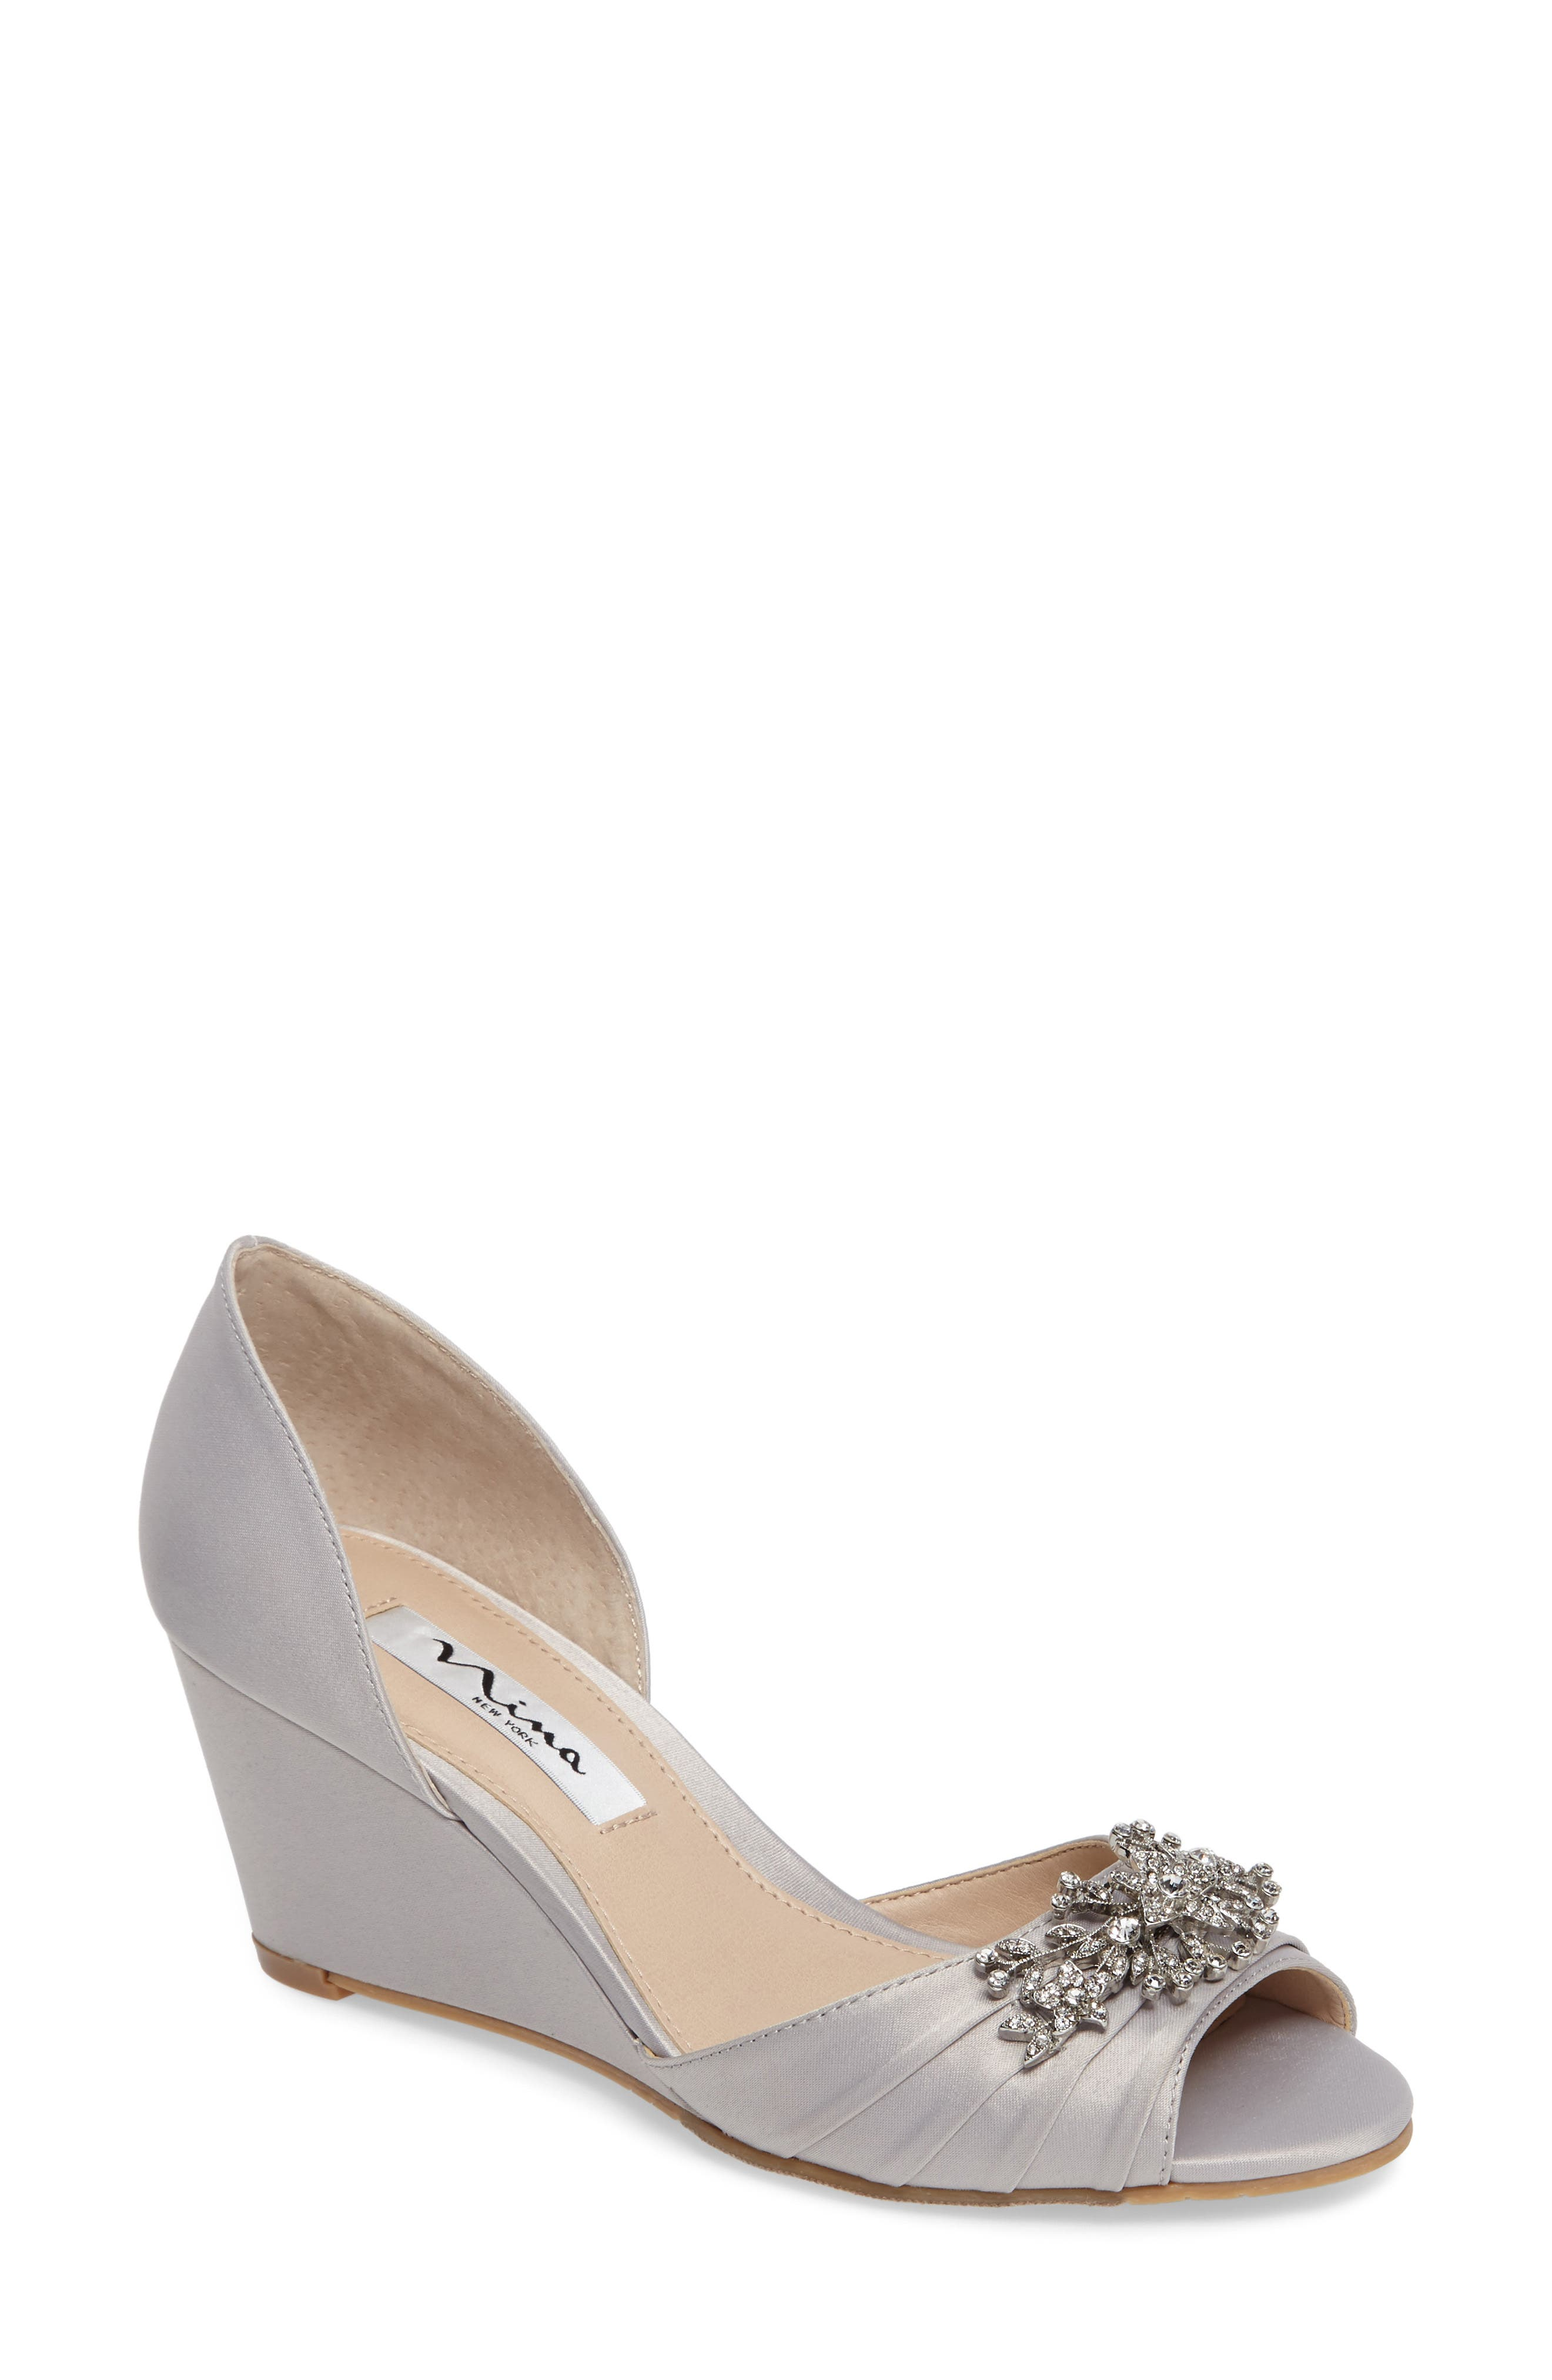 Emiko d'Orsay Wedge Pump,                         Main,                         color, SILVER SATIN